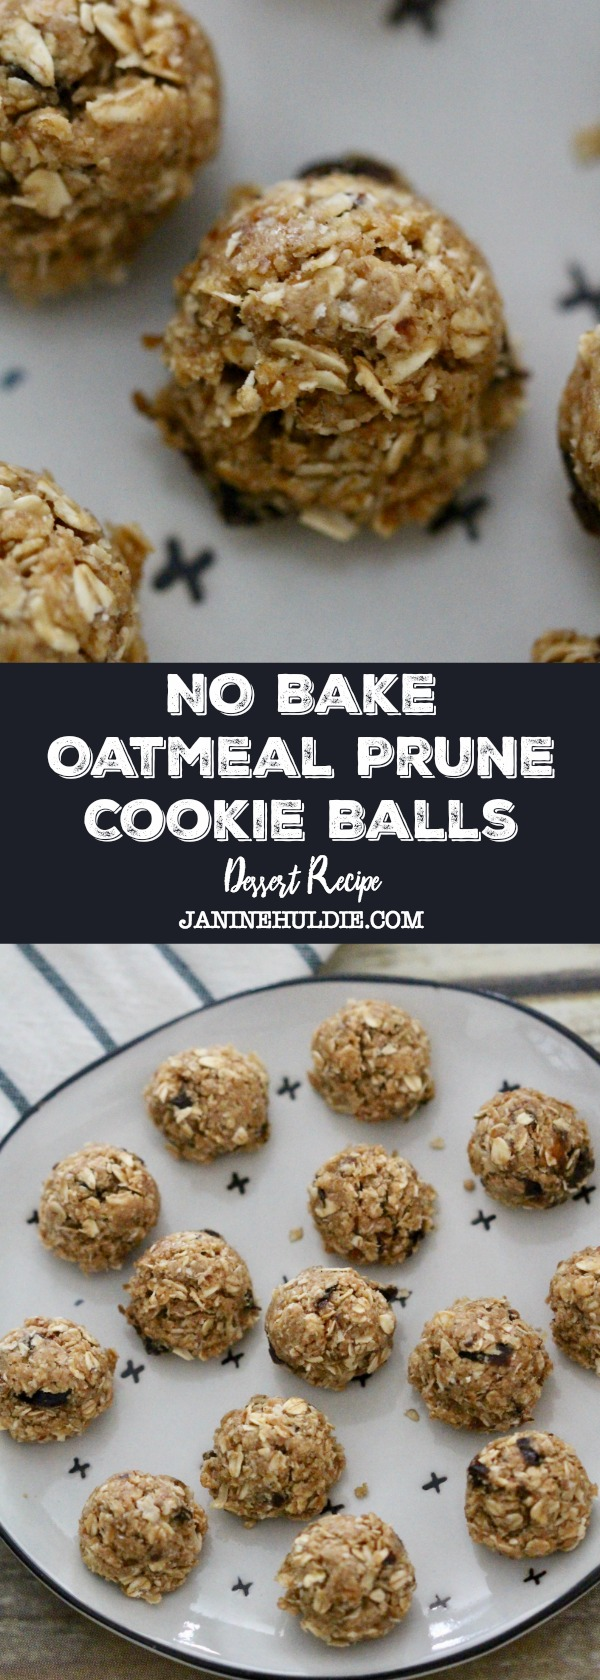 No Bake Oatmeal Prune Cookie Balls Recipe